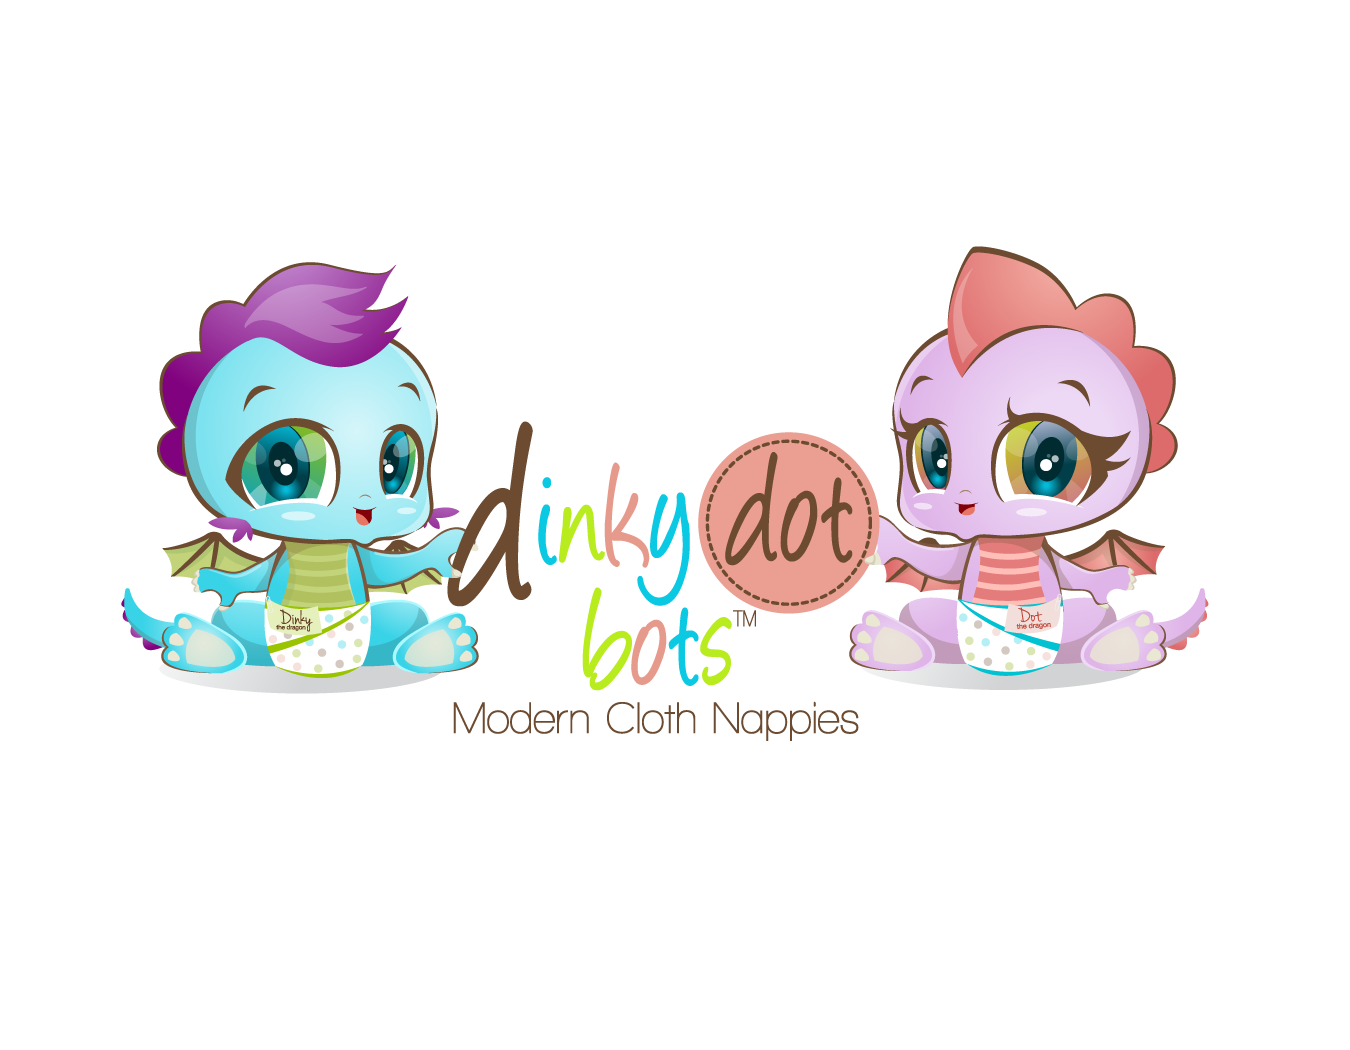 Help Dinky Dot Bots with a new illustration